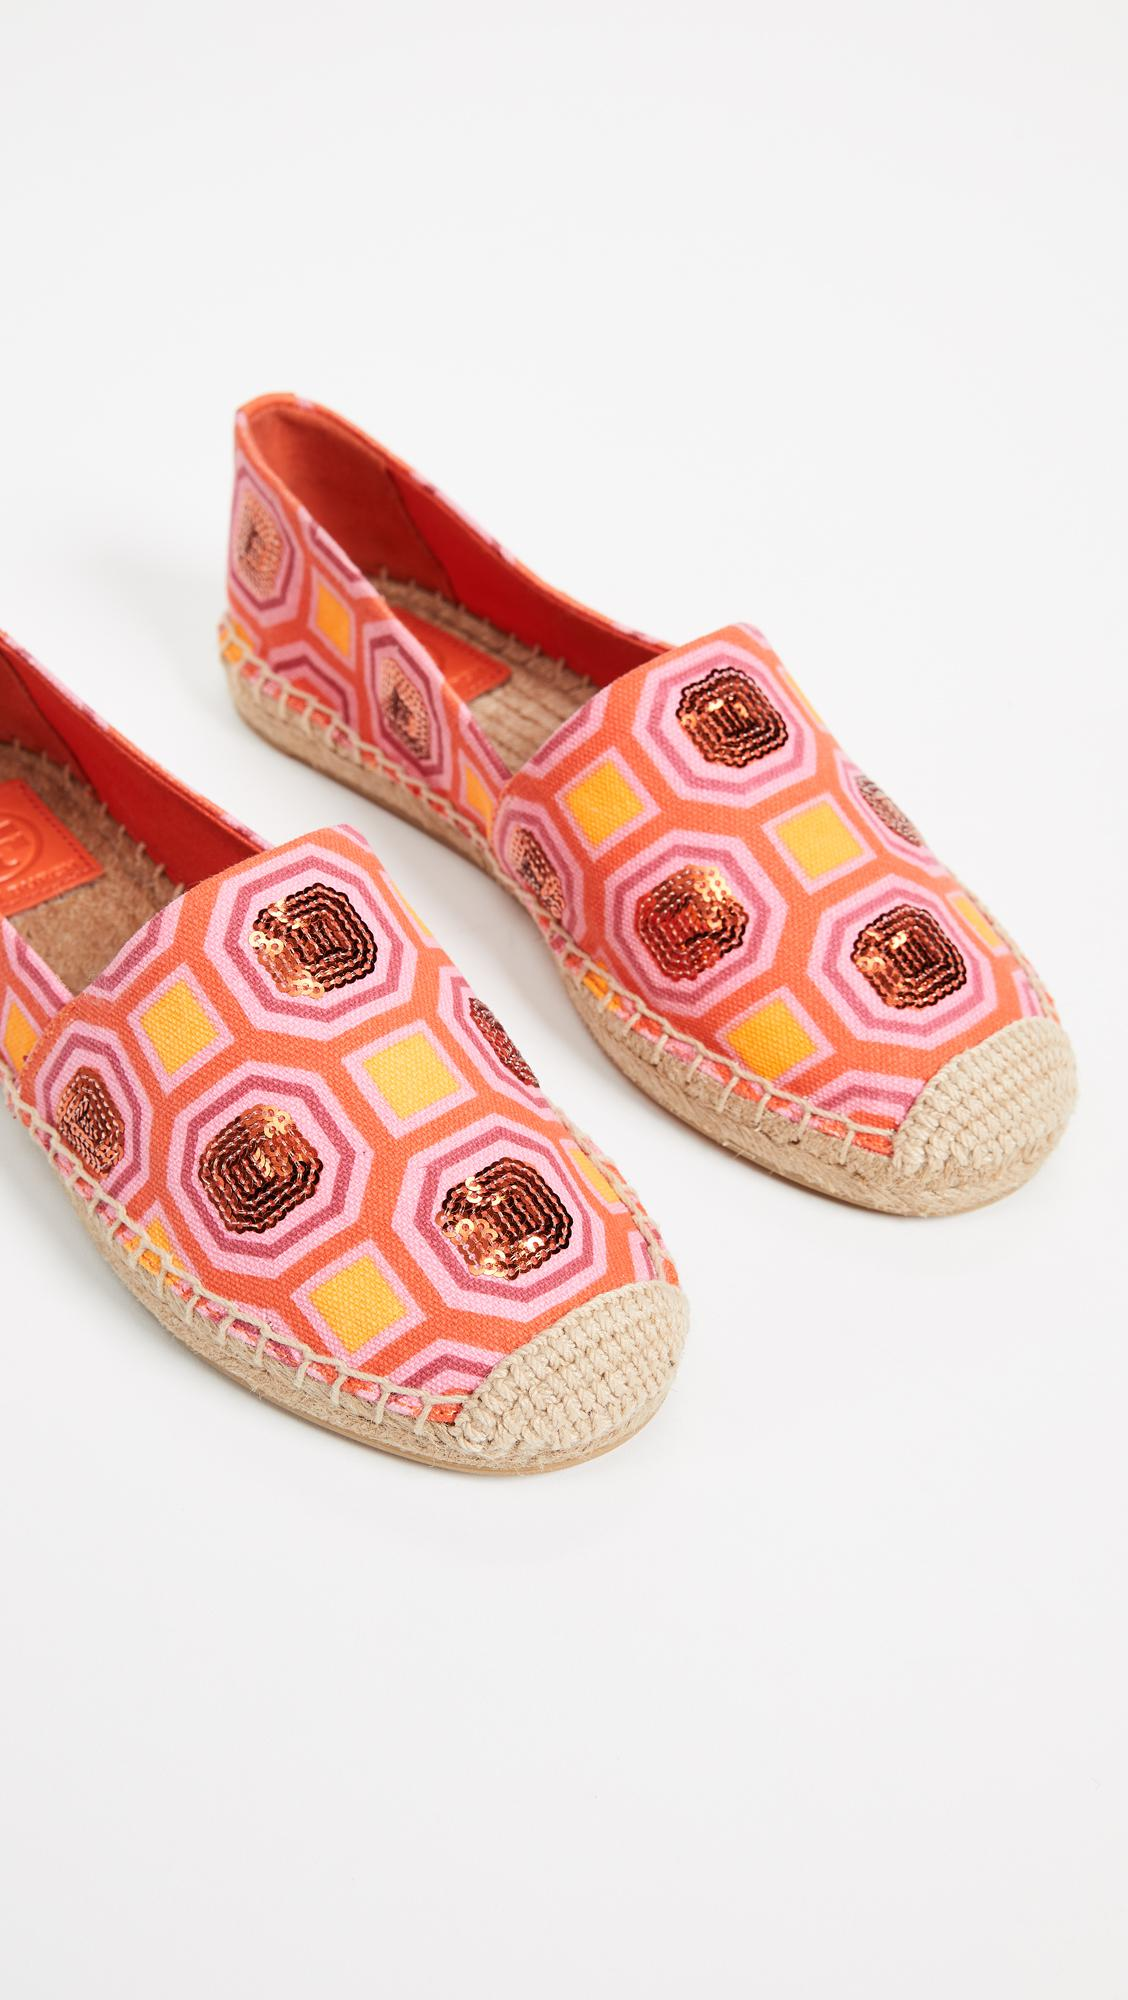 41073a102ab Tory Burch Cecily Embellished Espadrilles in Pink - Lyst